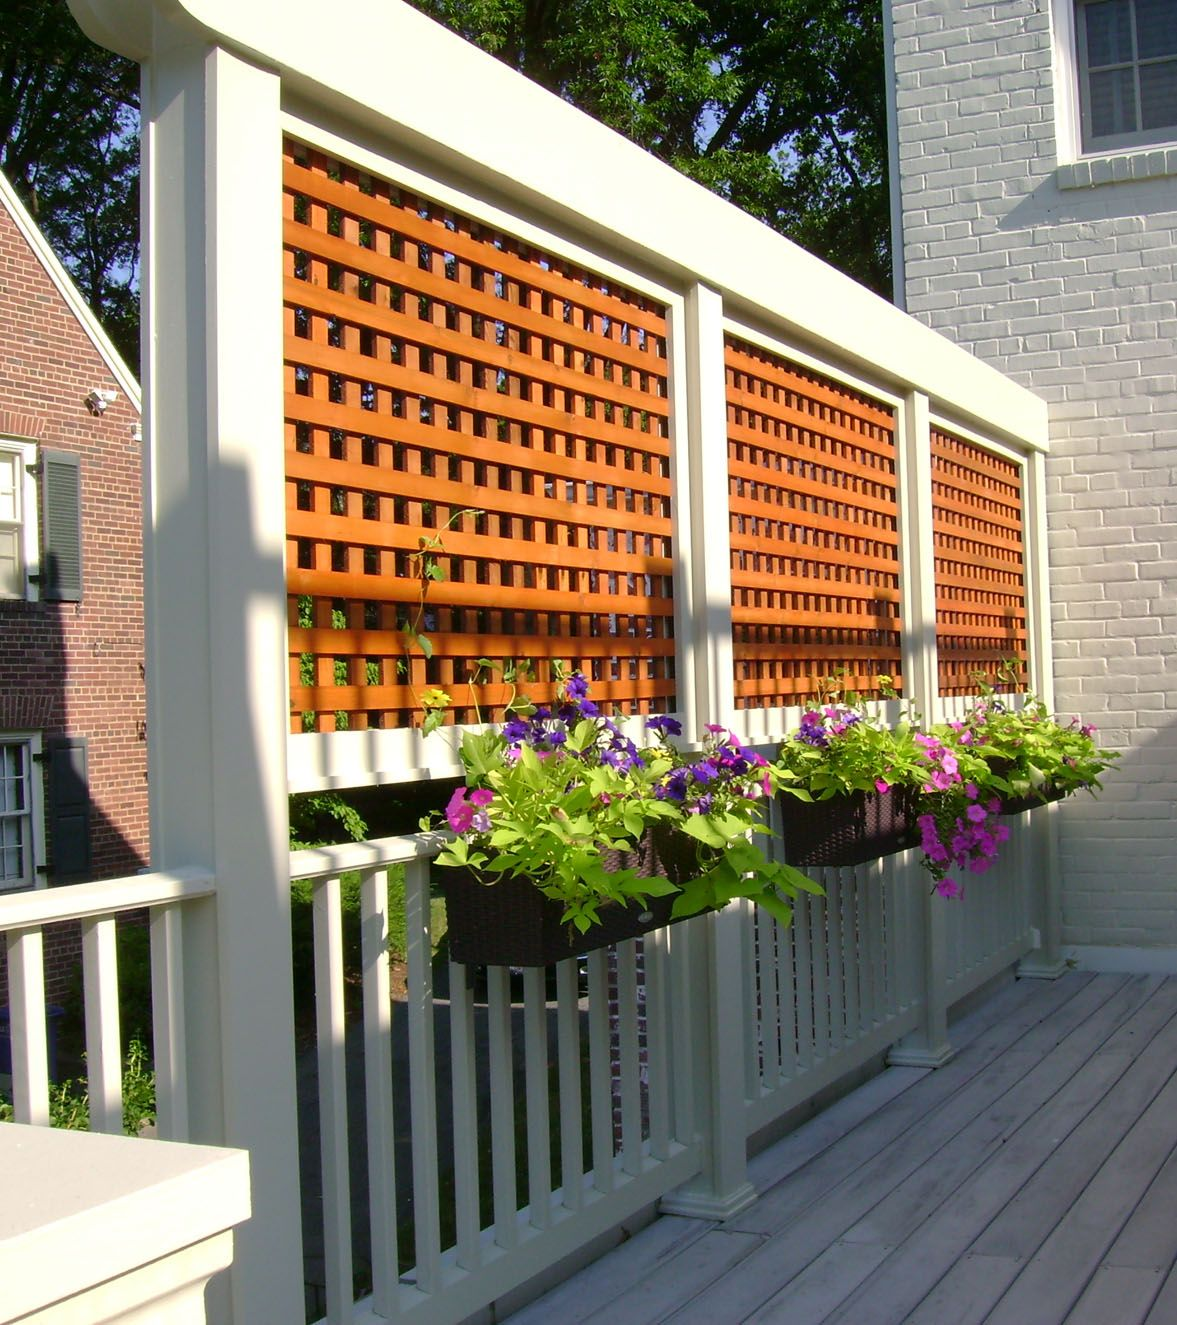 A little privacy makes for good neighbors petro design for Wood patio privacy screens